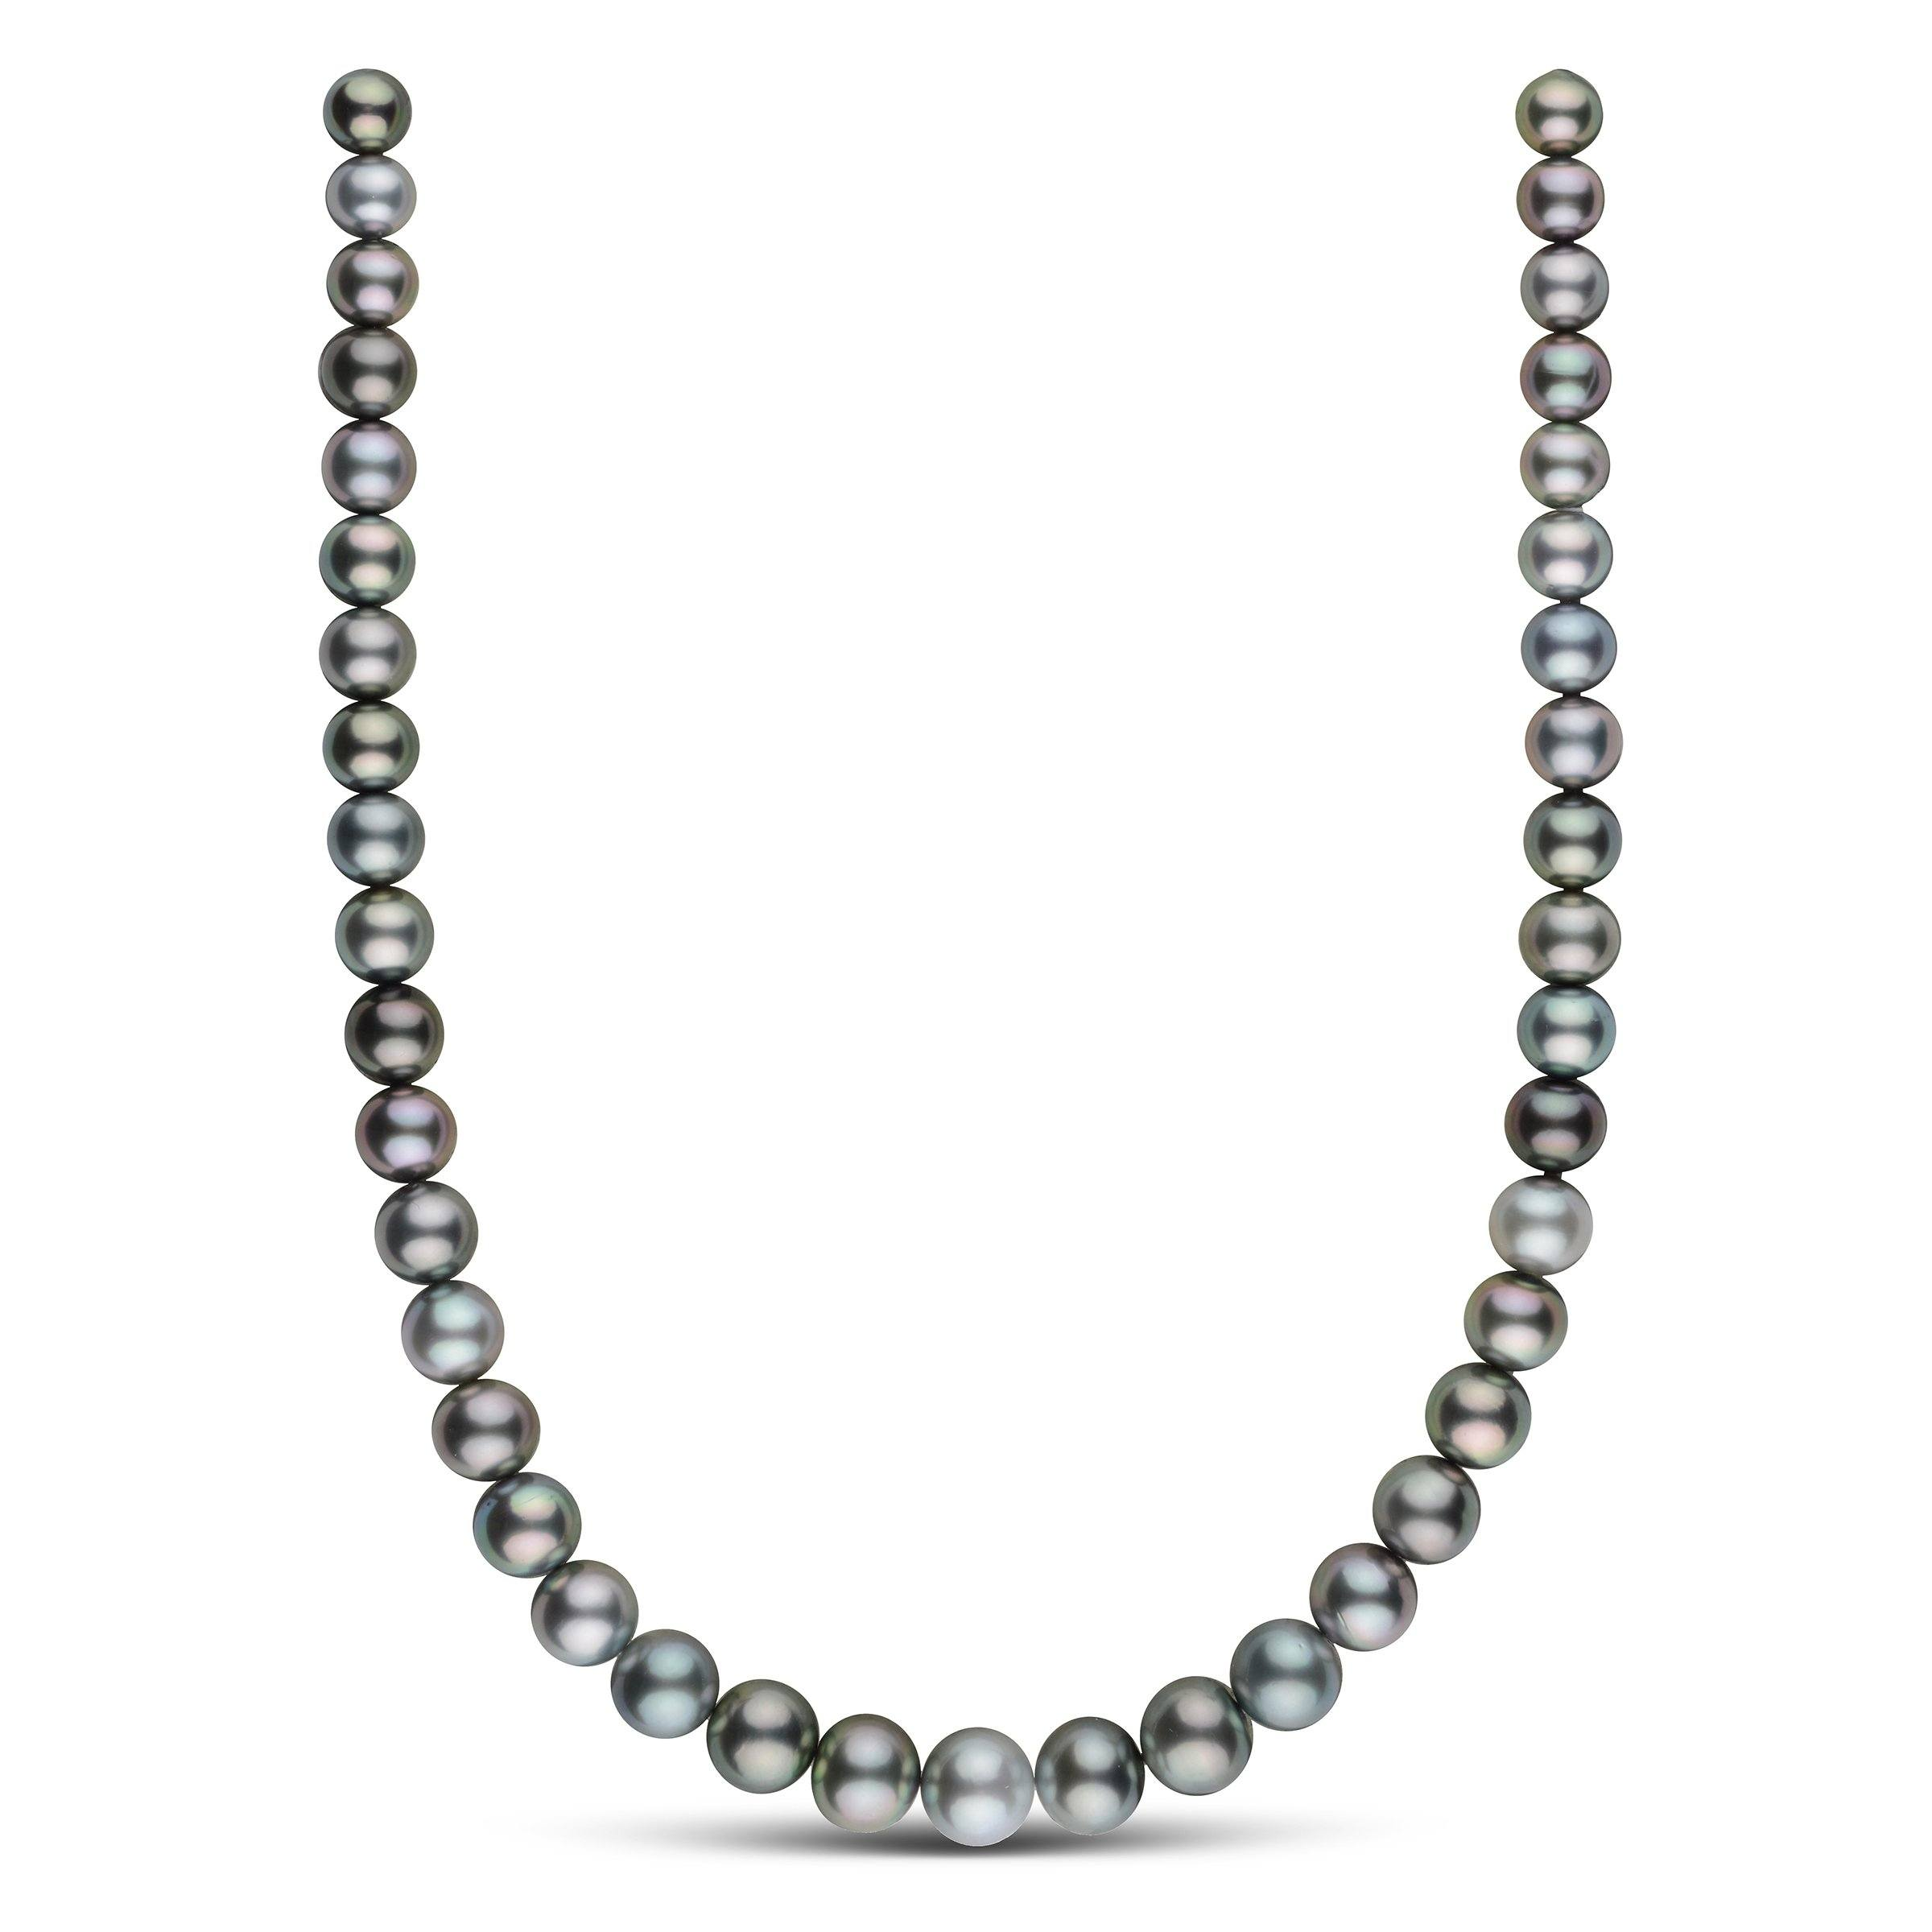 8.9-12.0 mm AAA Round Tahitian Pearl Necklace